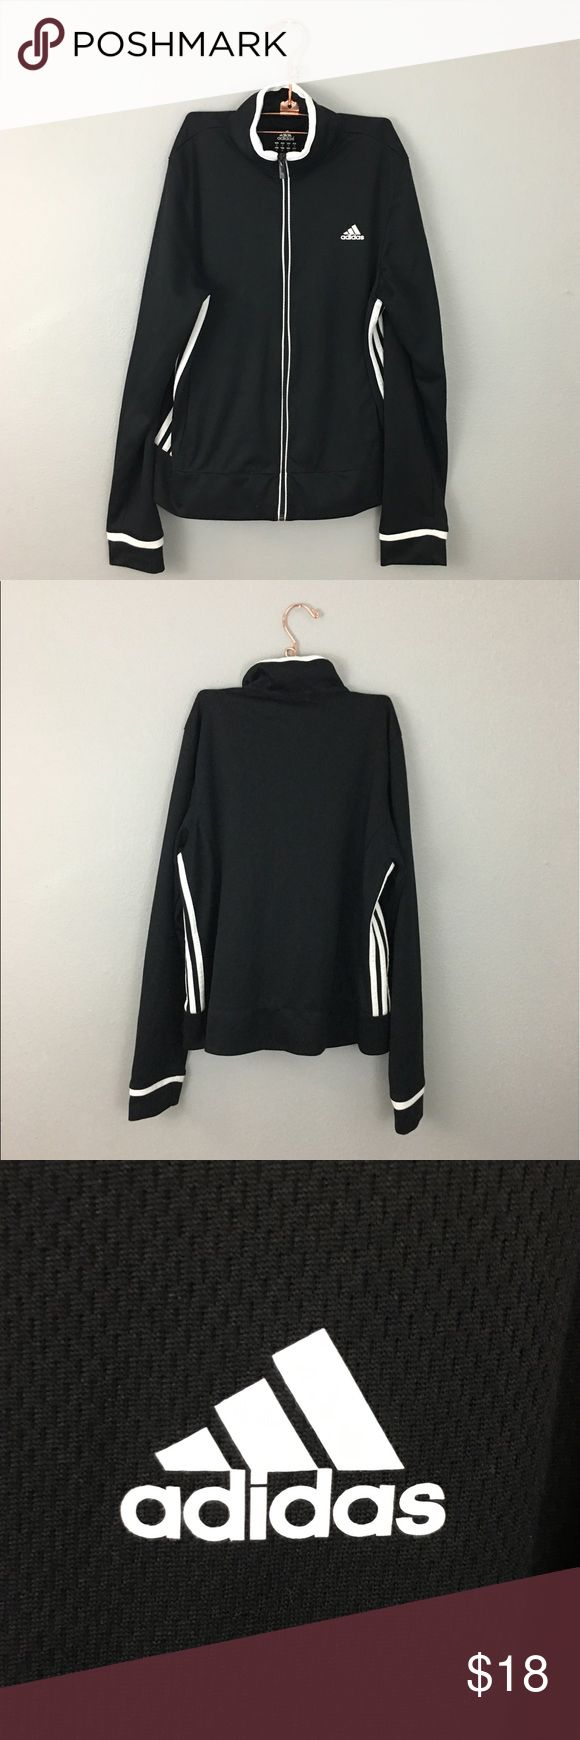 Adidas Black White Striped Zip Up Jacket Adidas Black White Striped Zip Up Jacket. Size medium. In great condition, no holes or stains. adidas Tops Sweatshirts & Hoodies